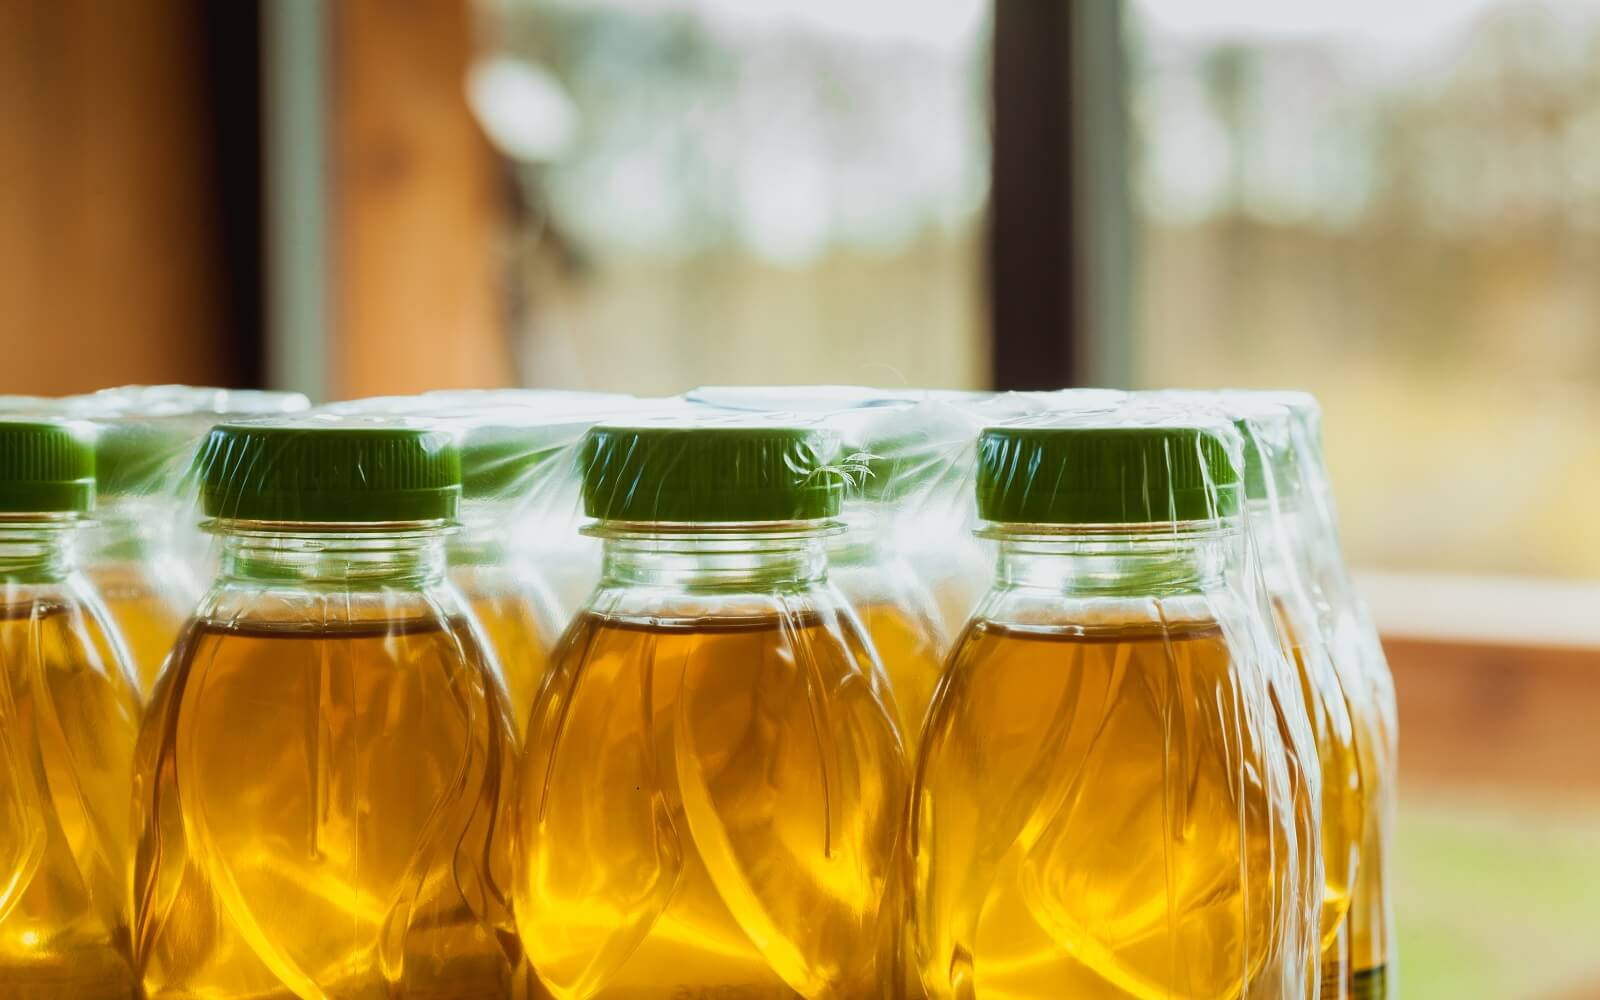 shrink wrapped bottles of yellow liquid and green tops